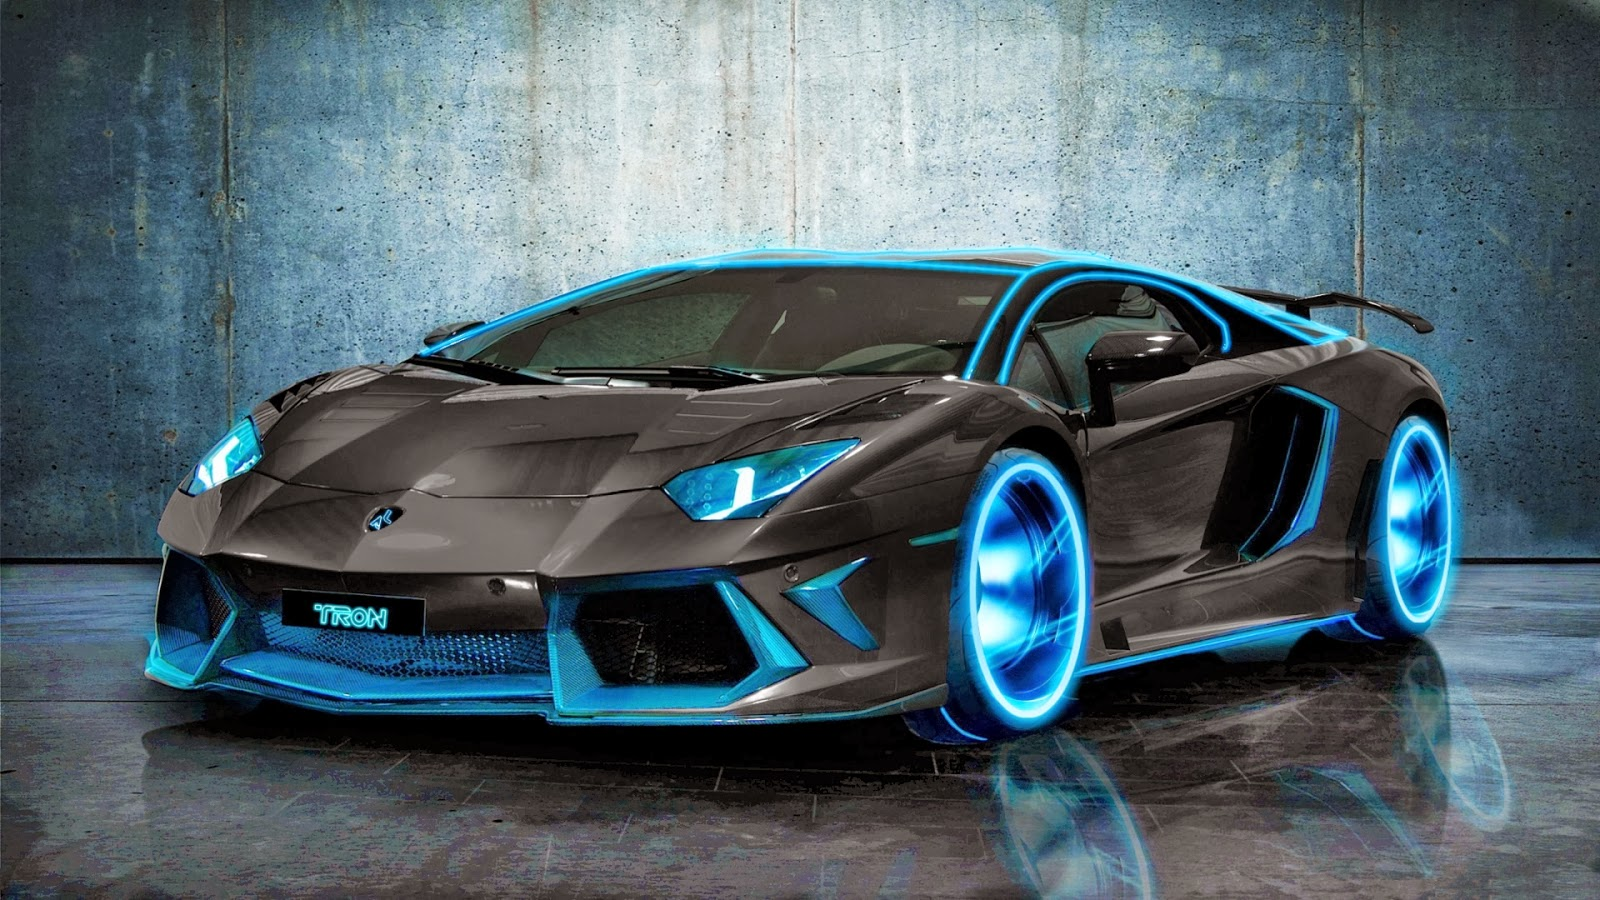 3d Wallpapers Lamborghini Wallpapers Full Hd Lamborghini